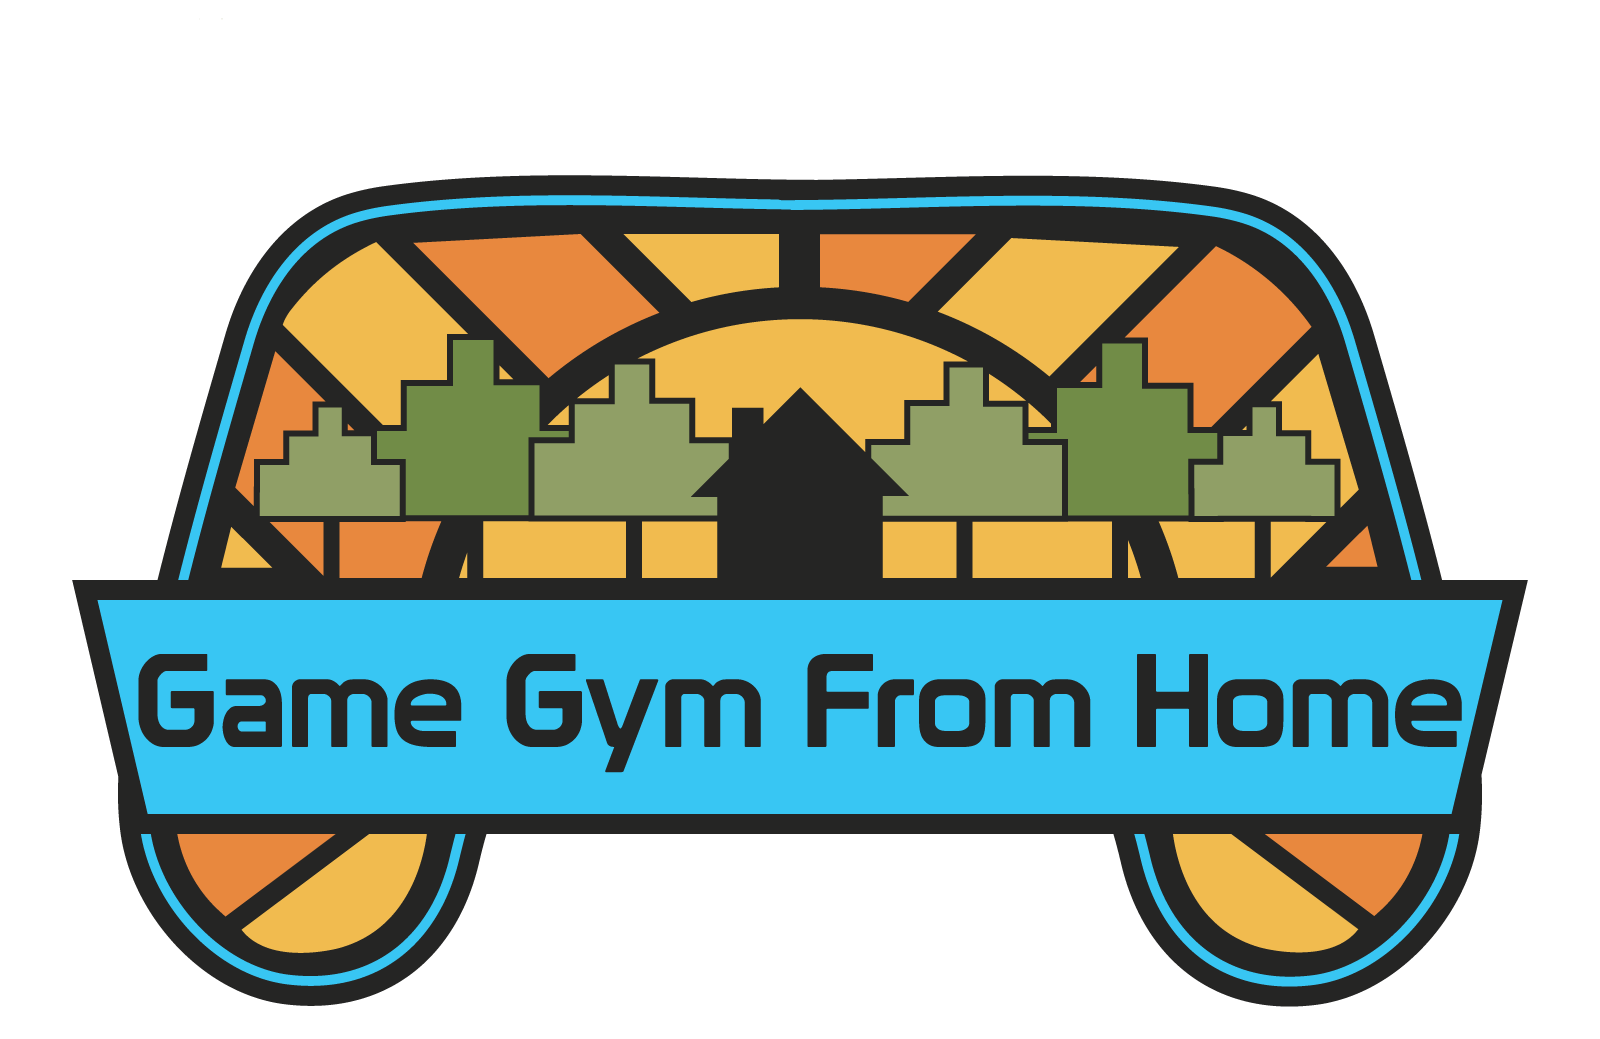 Game Gym From Home